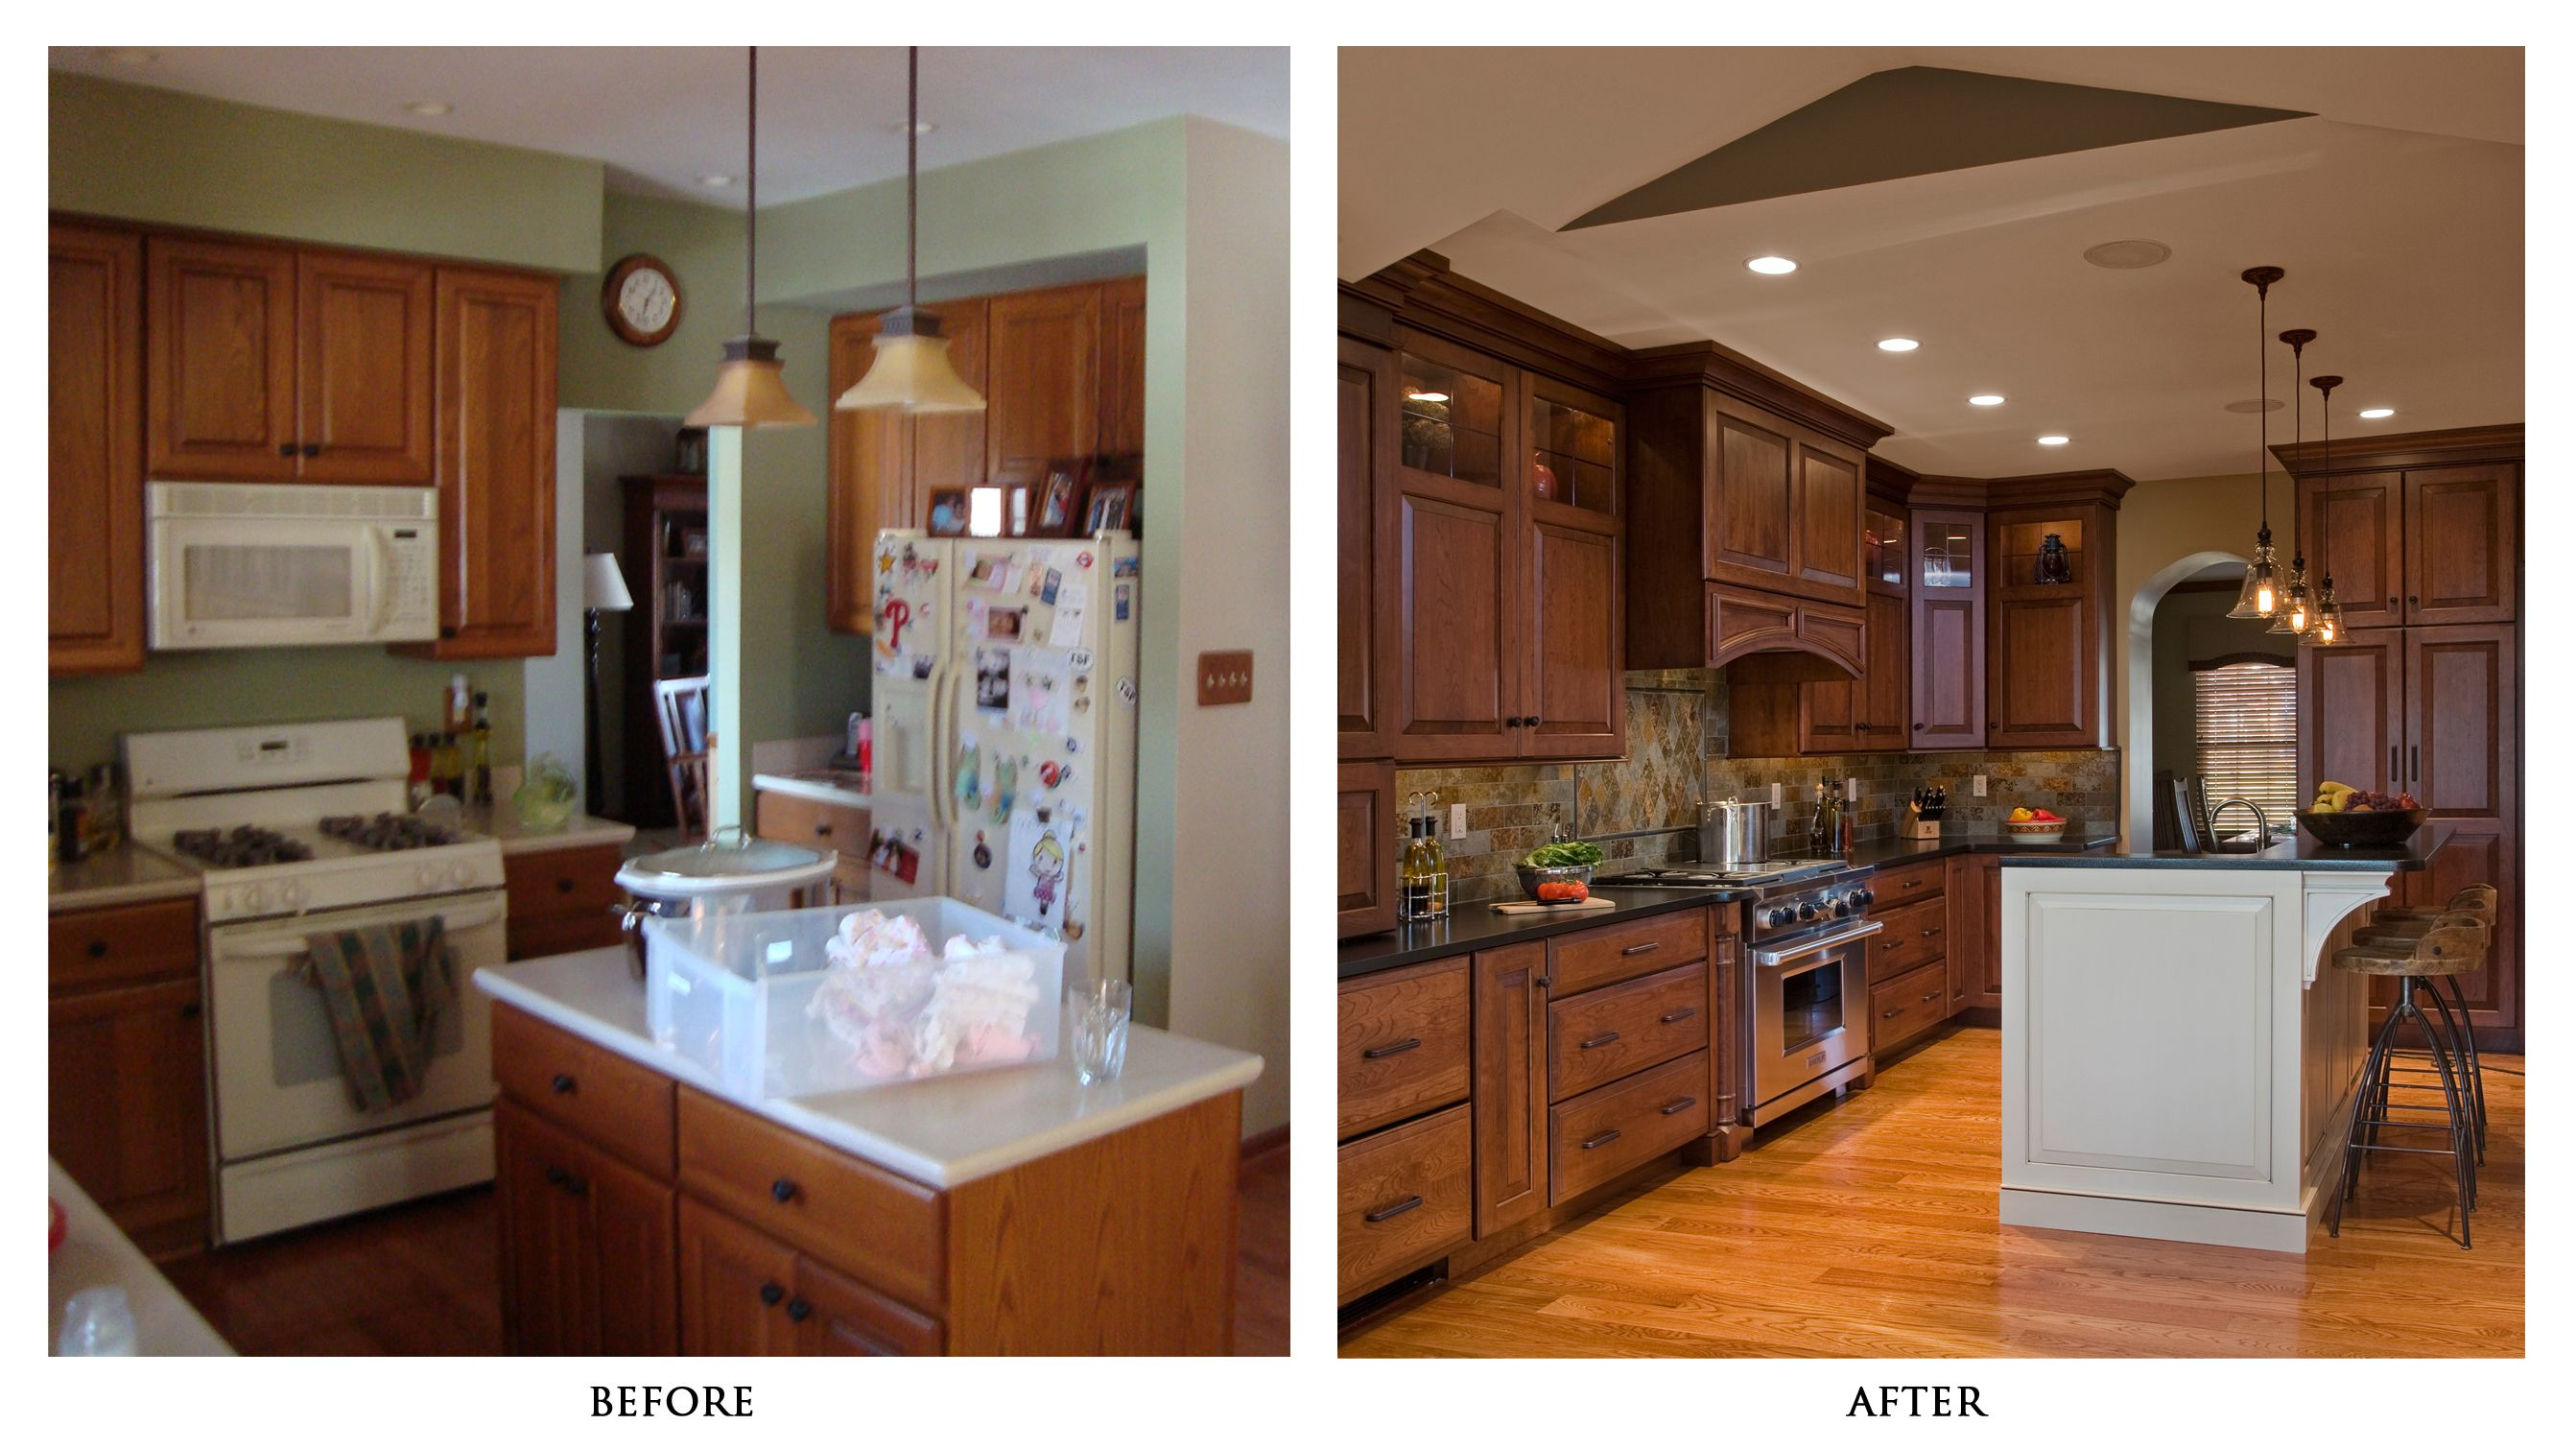 White Kitchen Remodel Before And After Kitchen Remodels Before And After Photos  Kitchen  Pinterest